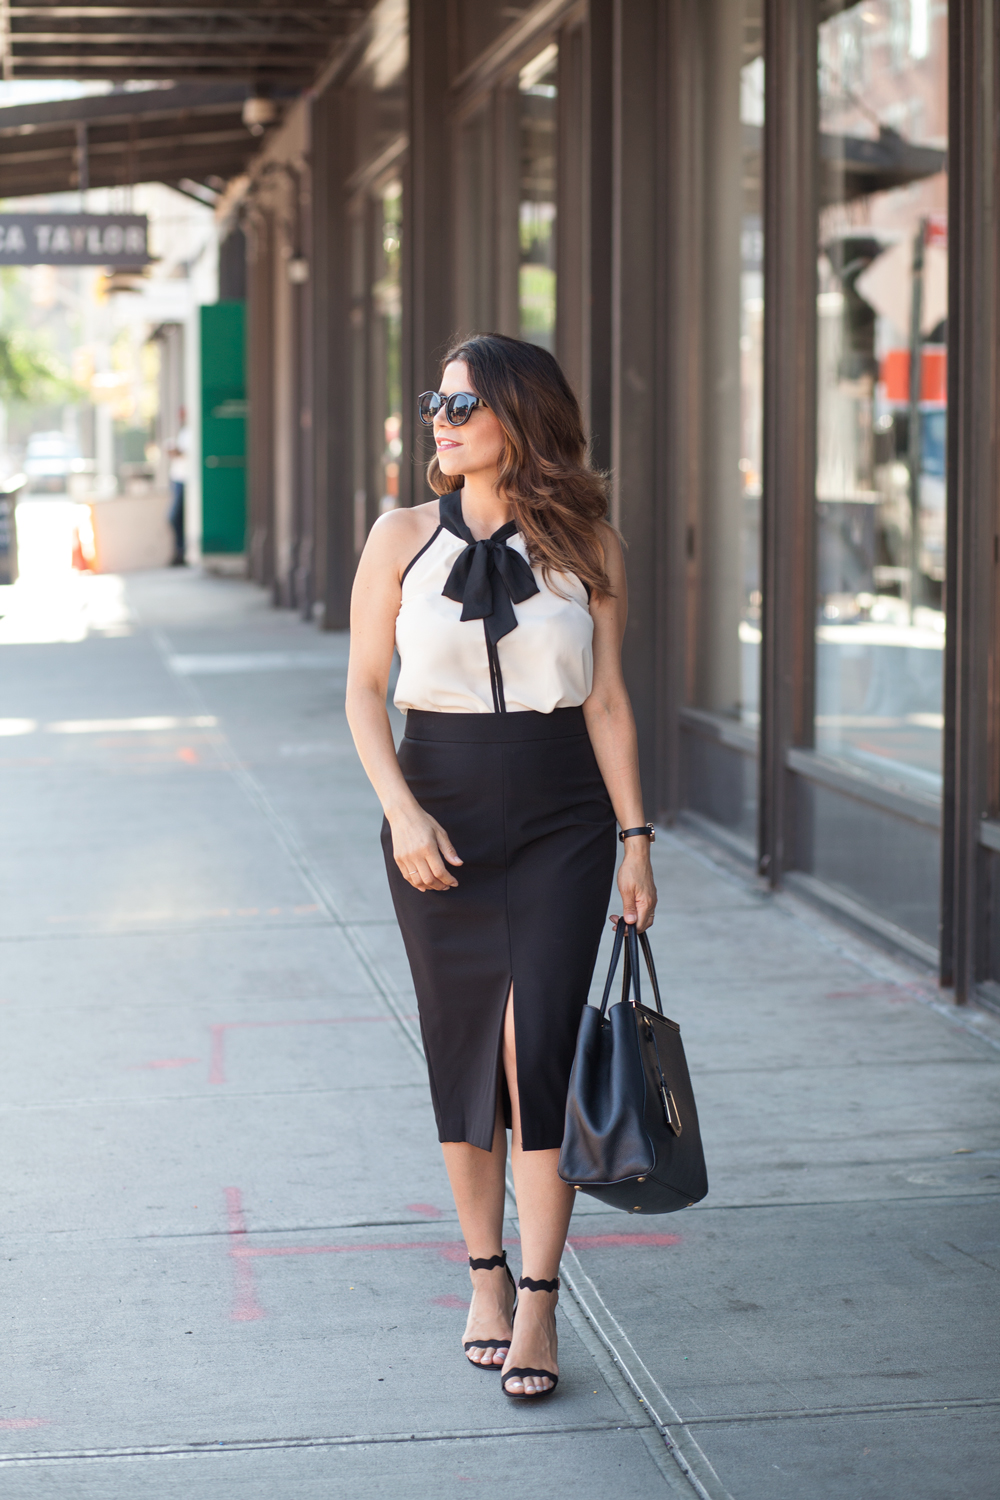 Black-pencil-skirt-neck-tie-bow-blouse-ModCloth-workwear-outfits-scalloped-black-heels-black-fendi-tote-what-to-wear-to-work-corporate-catwalk-nyc-new-york-fashion-blogger-copy2